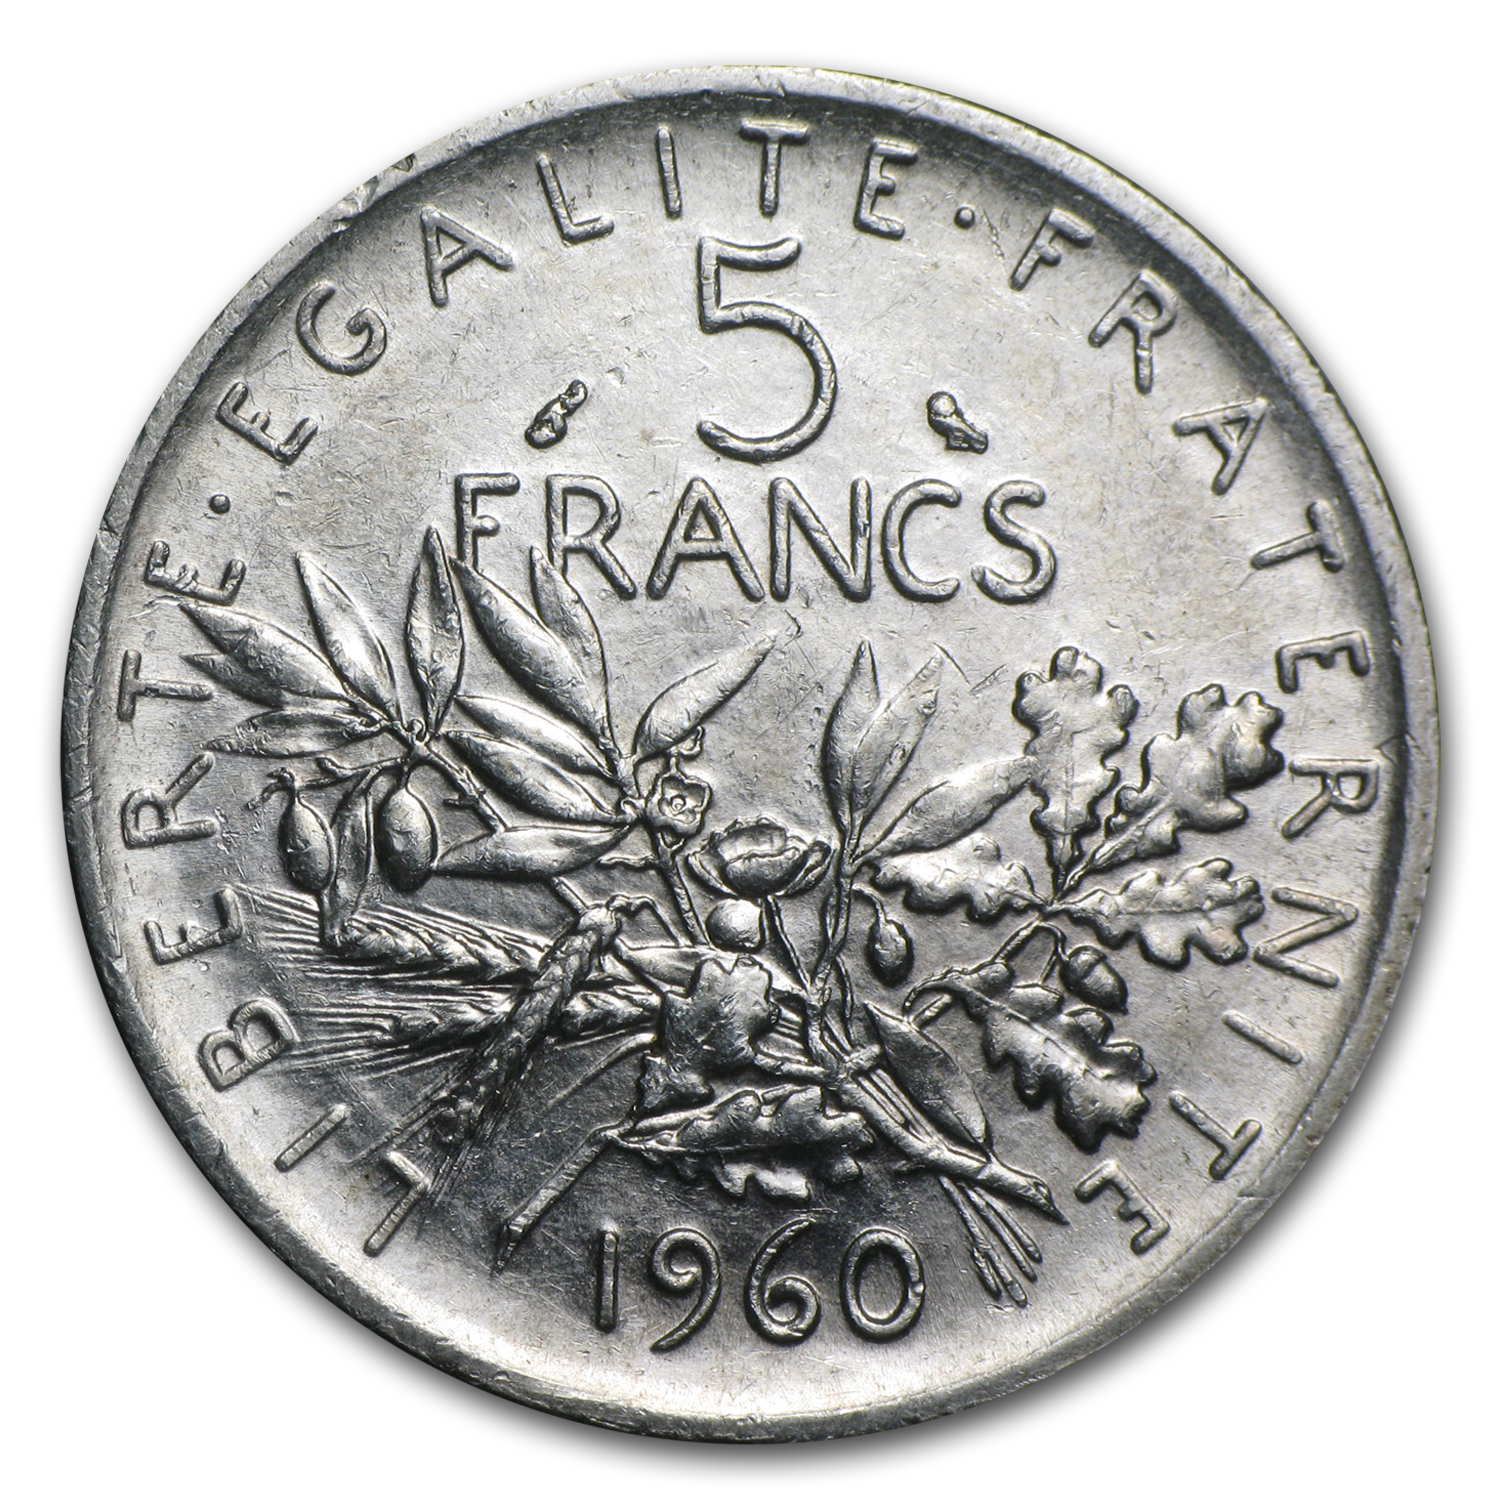 France Silver 5 Francs 1960-1969 ASW .3221